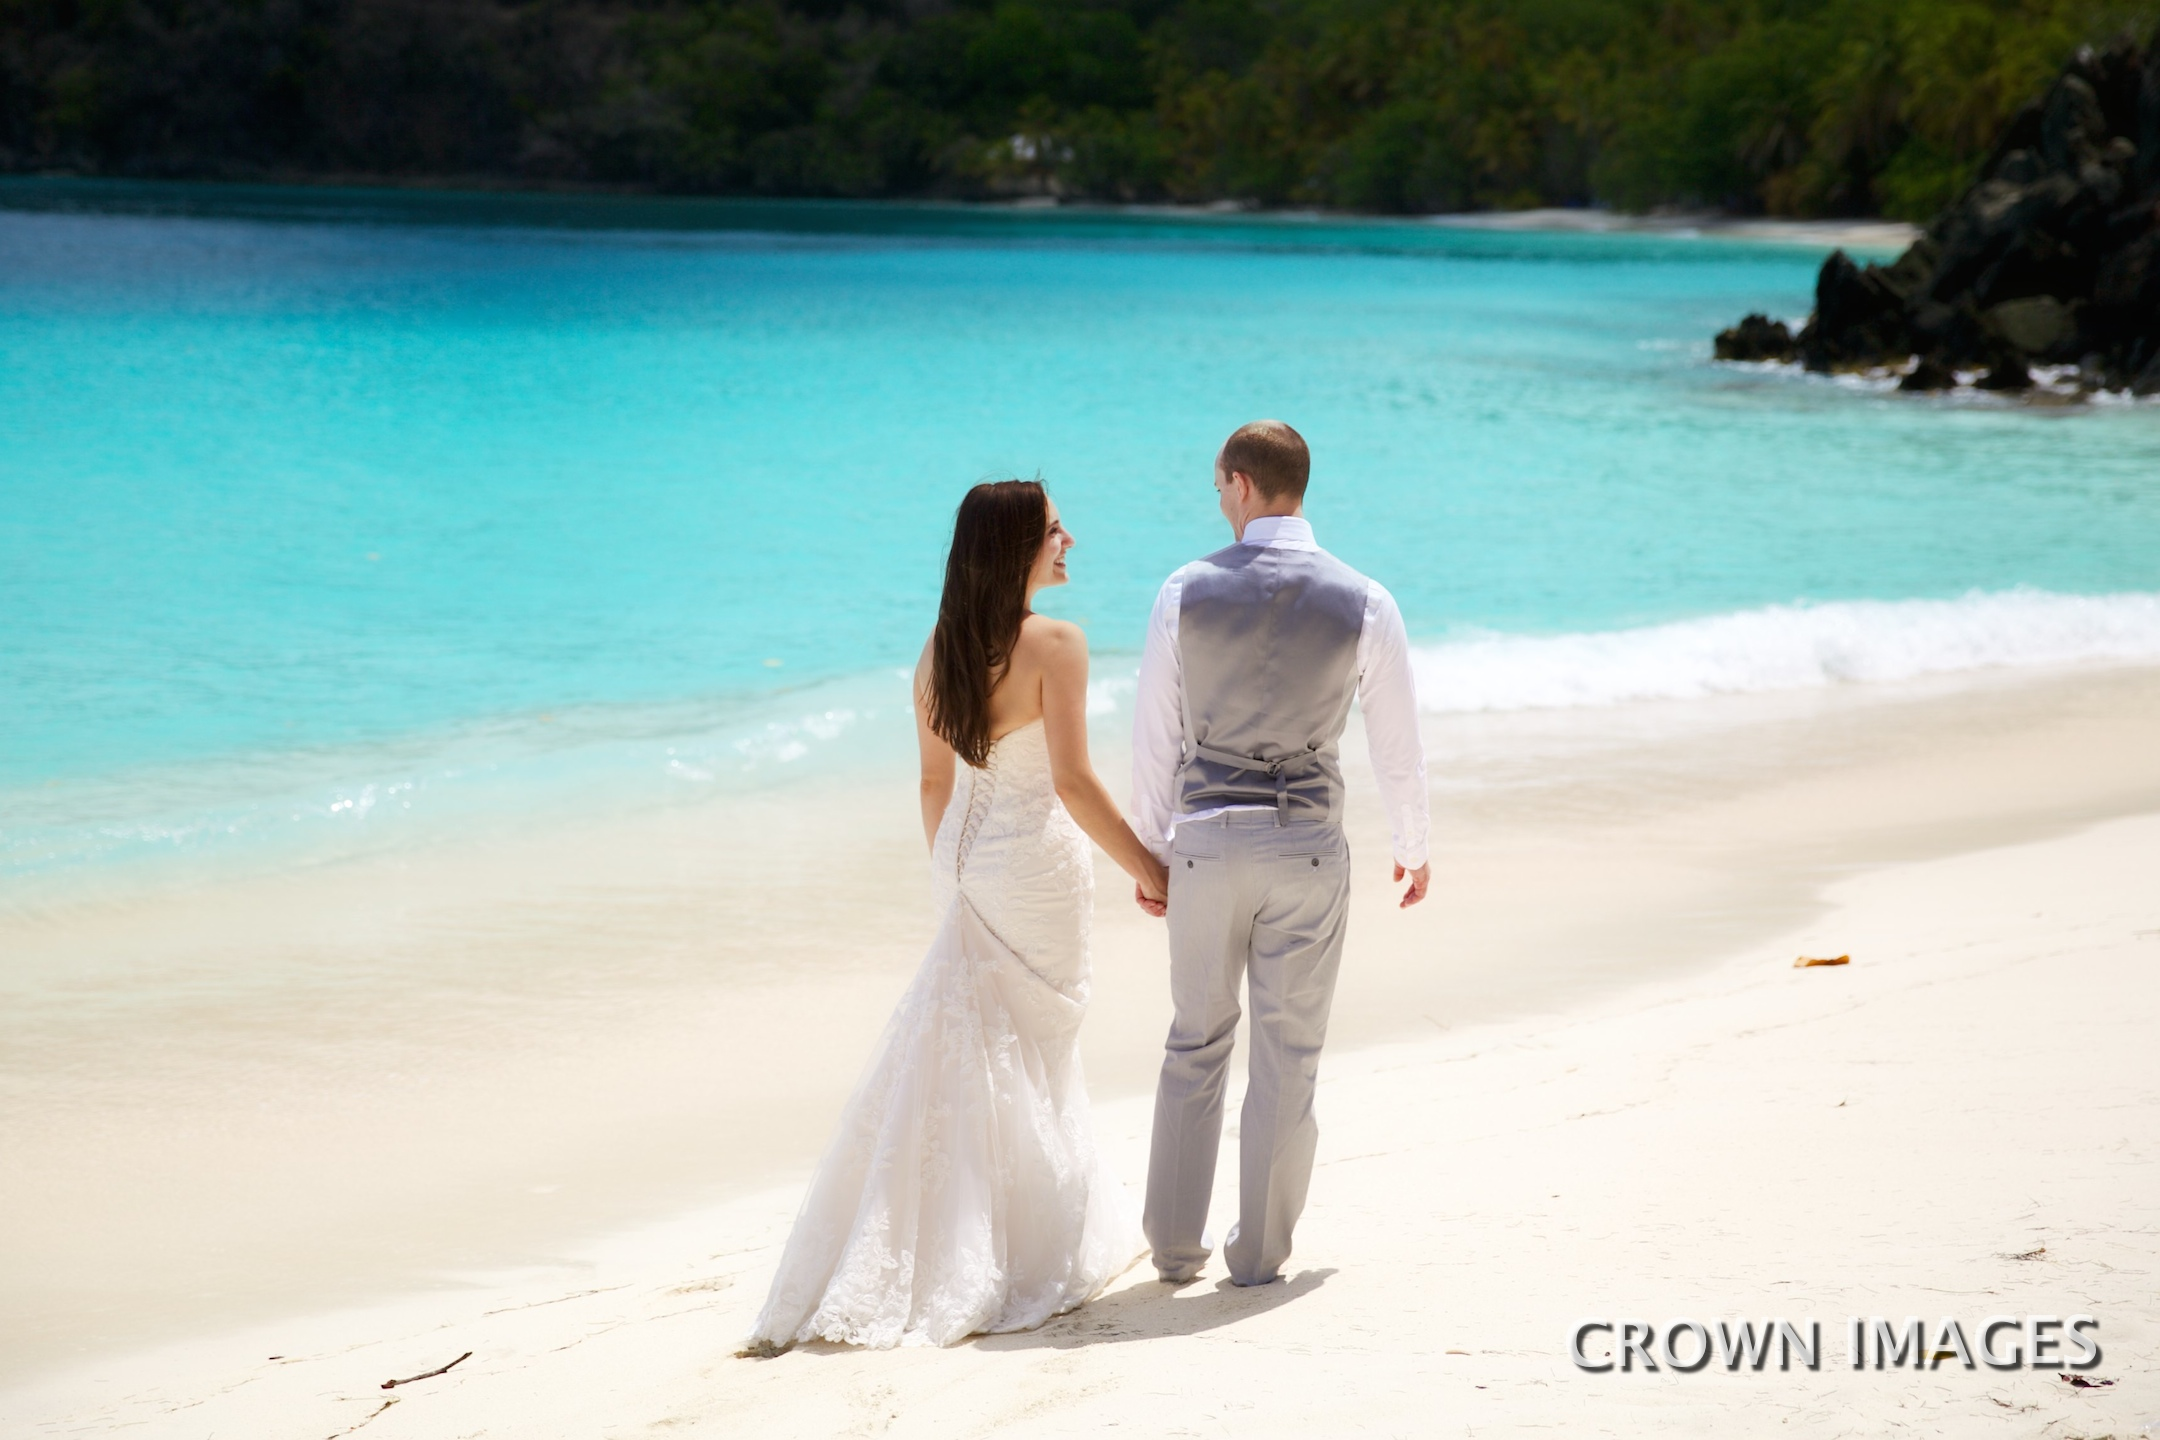 island wedding in the caribbean photos by crown images